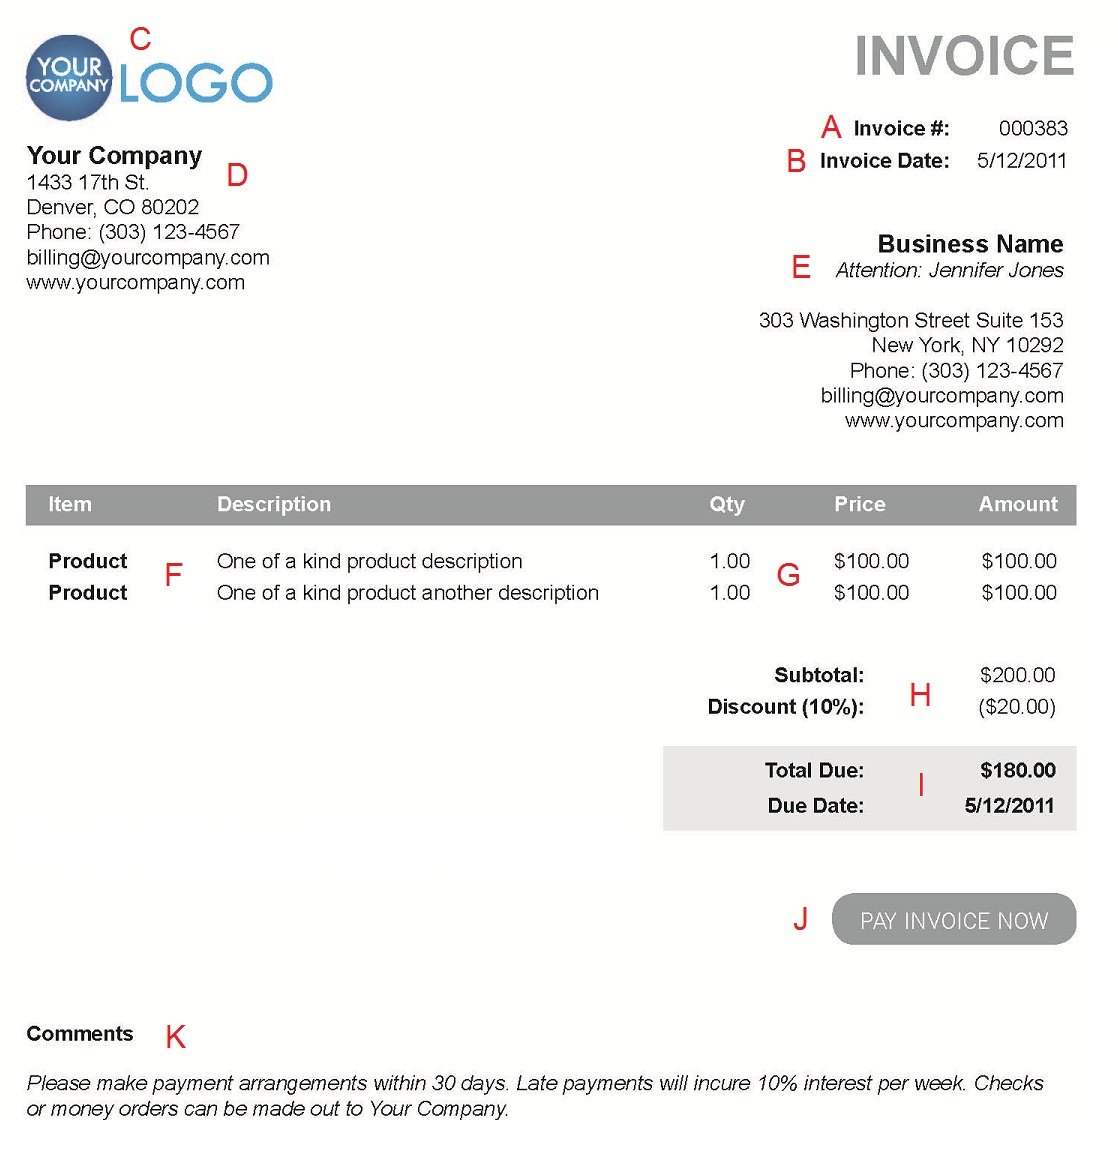 Opposenewapstandardsus  Winsome The  Different Sections Of An Electronic Payment Invoice With Lovely A  With Delectable How To Do A Paypal Invoice Also Lawn Invoice In Addition Pay My Invoice And Proma Invoice As Well As Invoice Statement Additionally Kia Soul Invoice Price From Paysimplecom With Opposenewapstandardsus  Lovely The  Different Sections Of An Electronic Payment Invoice With Delectable A  And Winsome How To Do A Paypal Invoice Also Lawn Invoice In Addition Pay My Invoice From Paysimplecom